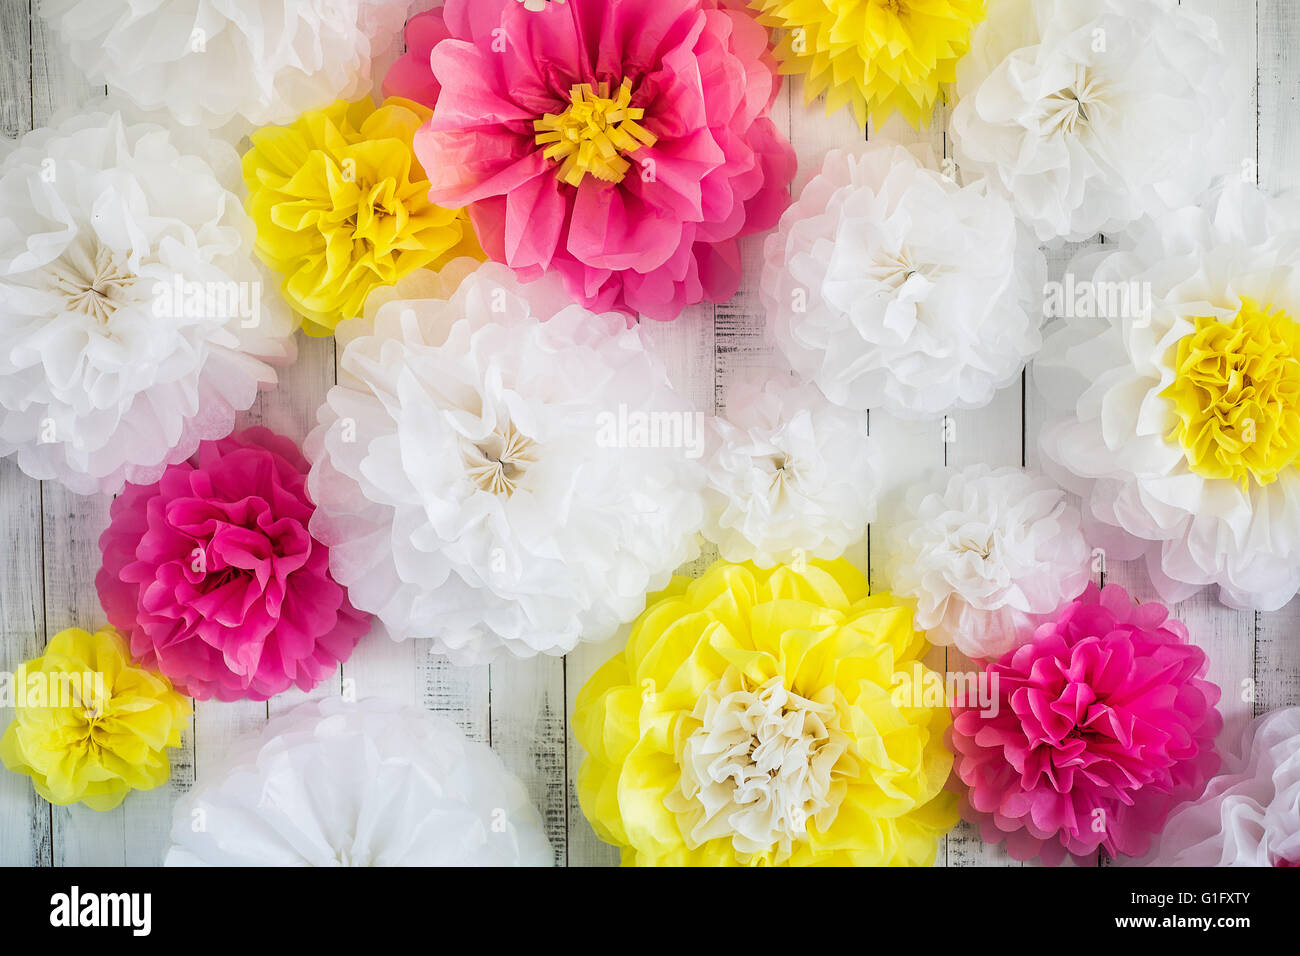 Paper handmade flowers isolated on white wood background beautiful paper handmade flowers isolated on white wood background beautiful floral background of white pink and yellow colors mightylinksfo